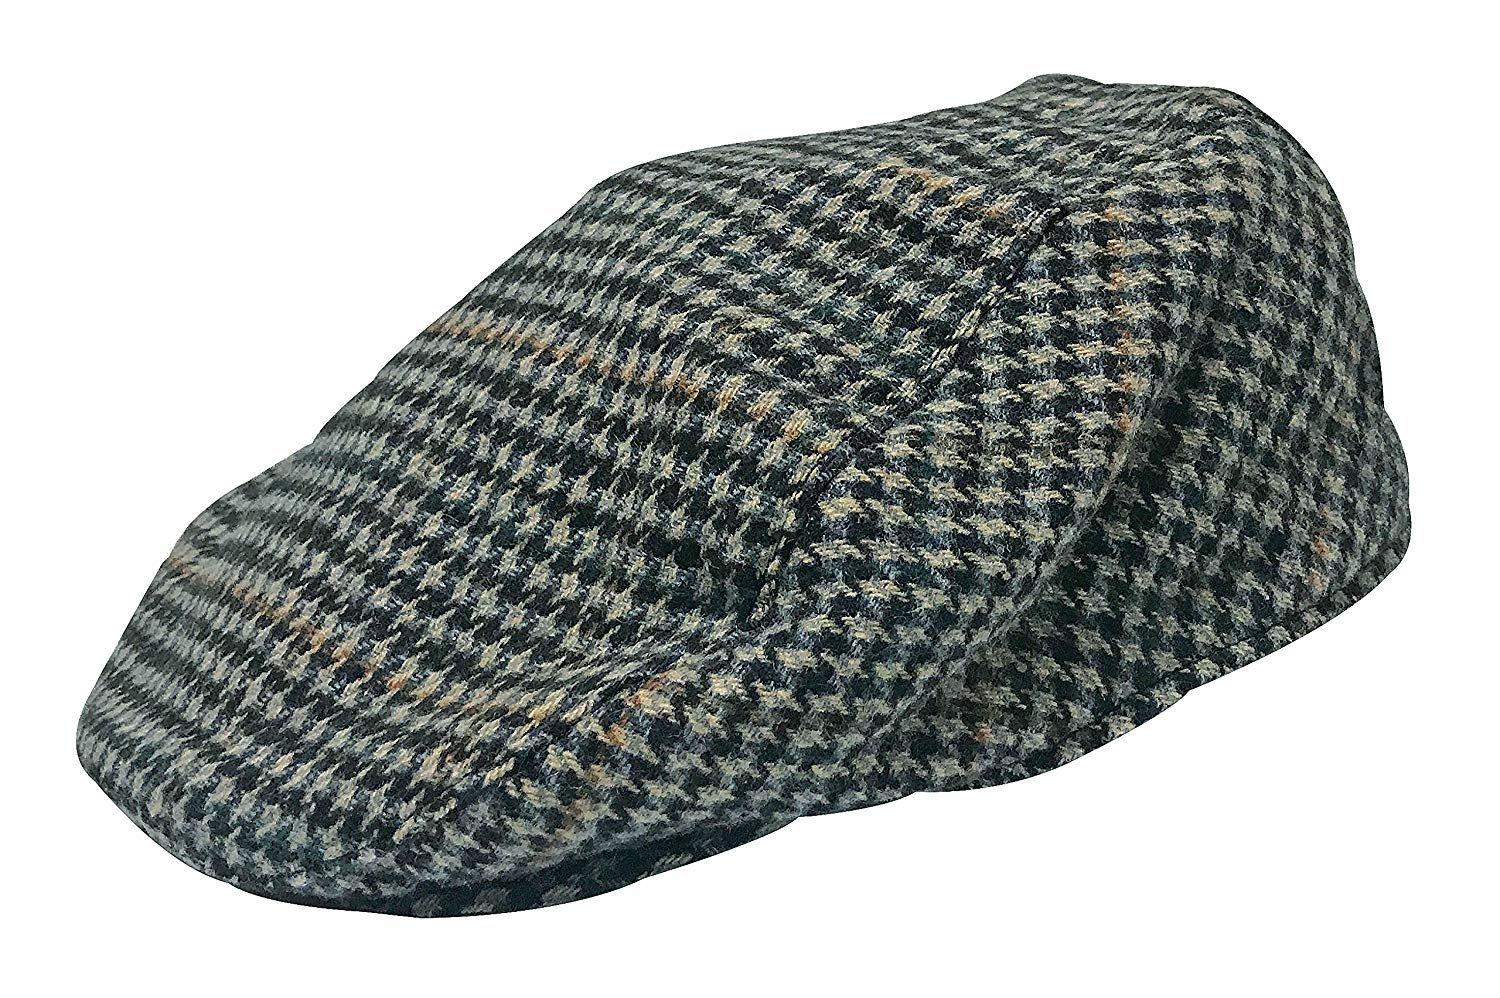 Get Quotations · Sock Snob Mens Vintage Houndstooth Plaid Wool Blend Winter newsboy  Flat IVY Cap Hat 6e82b785a8a3